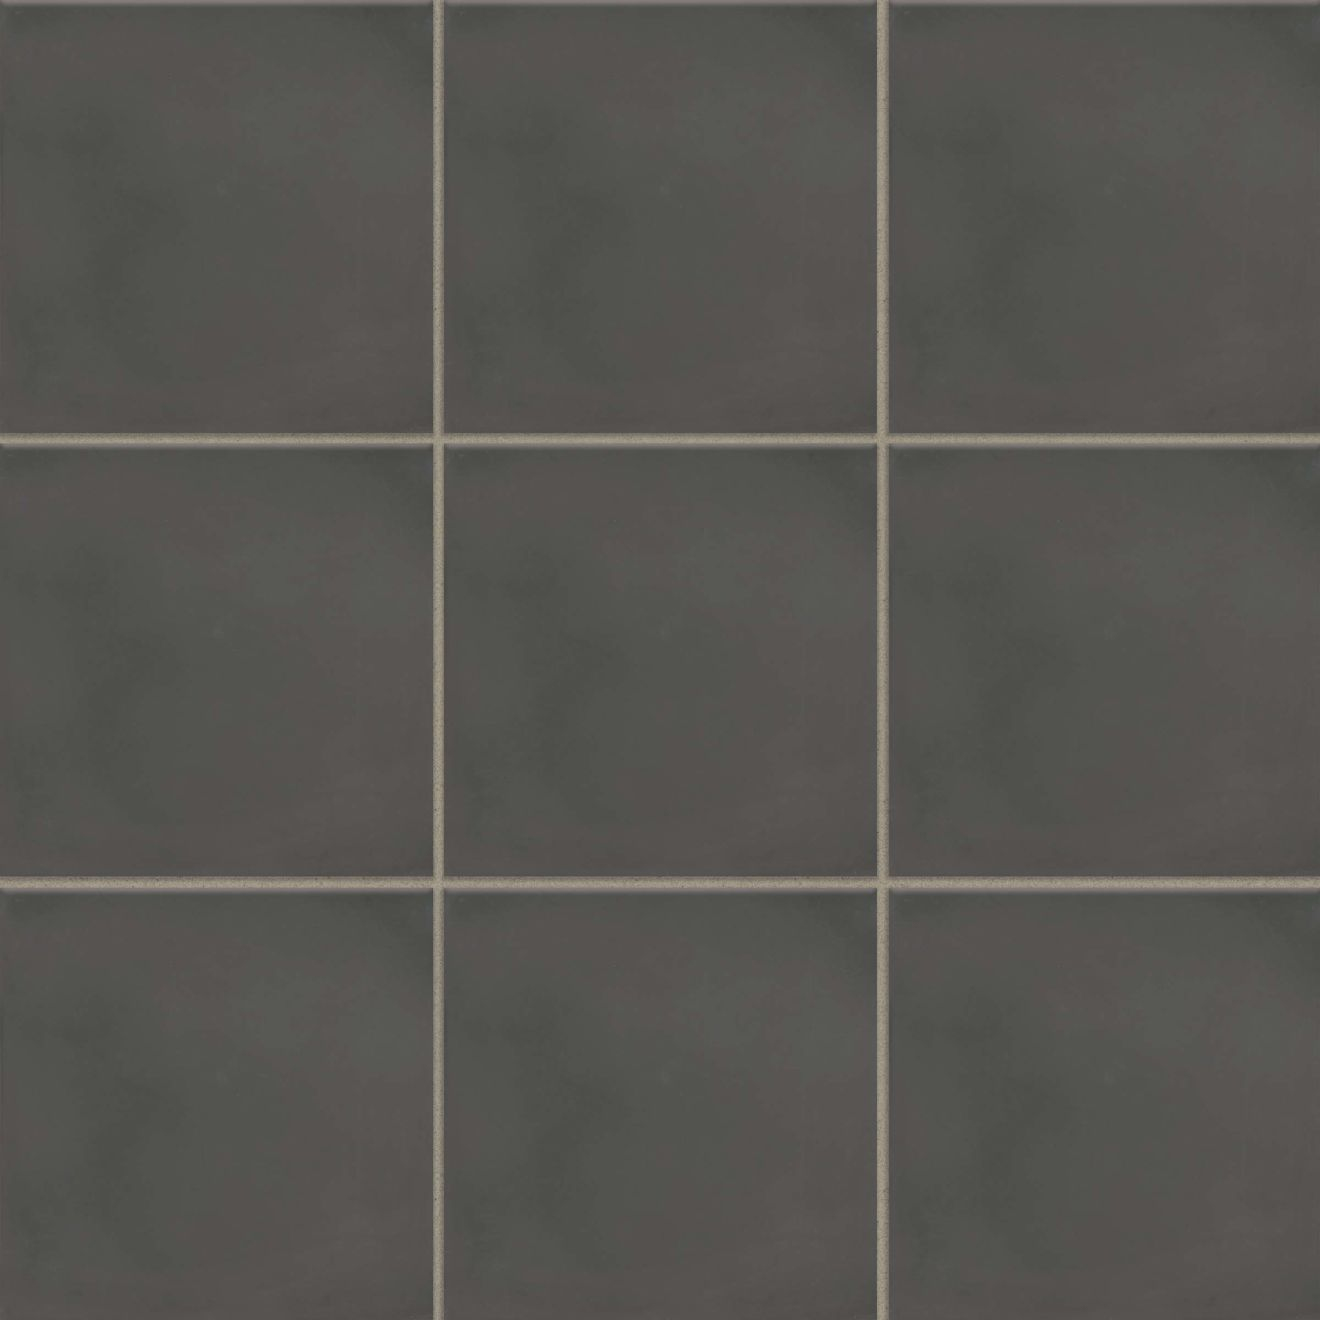 Remy 8 X Floor Wall Tile In Charcoal